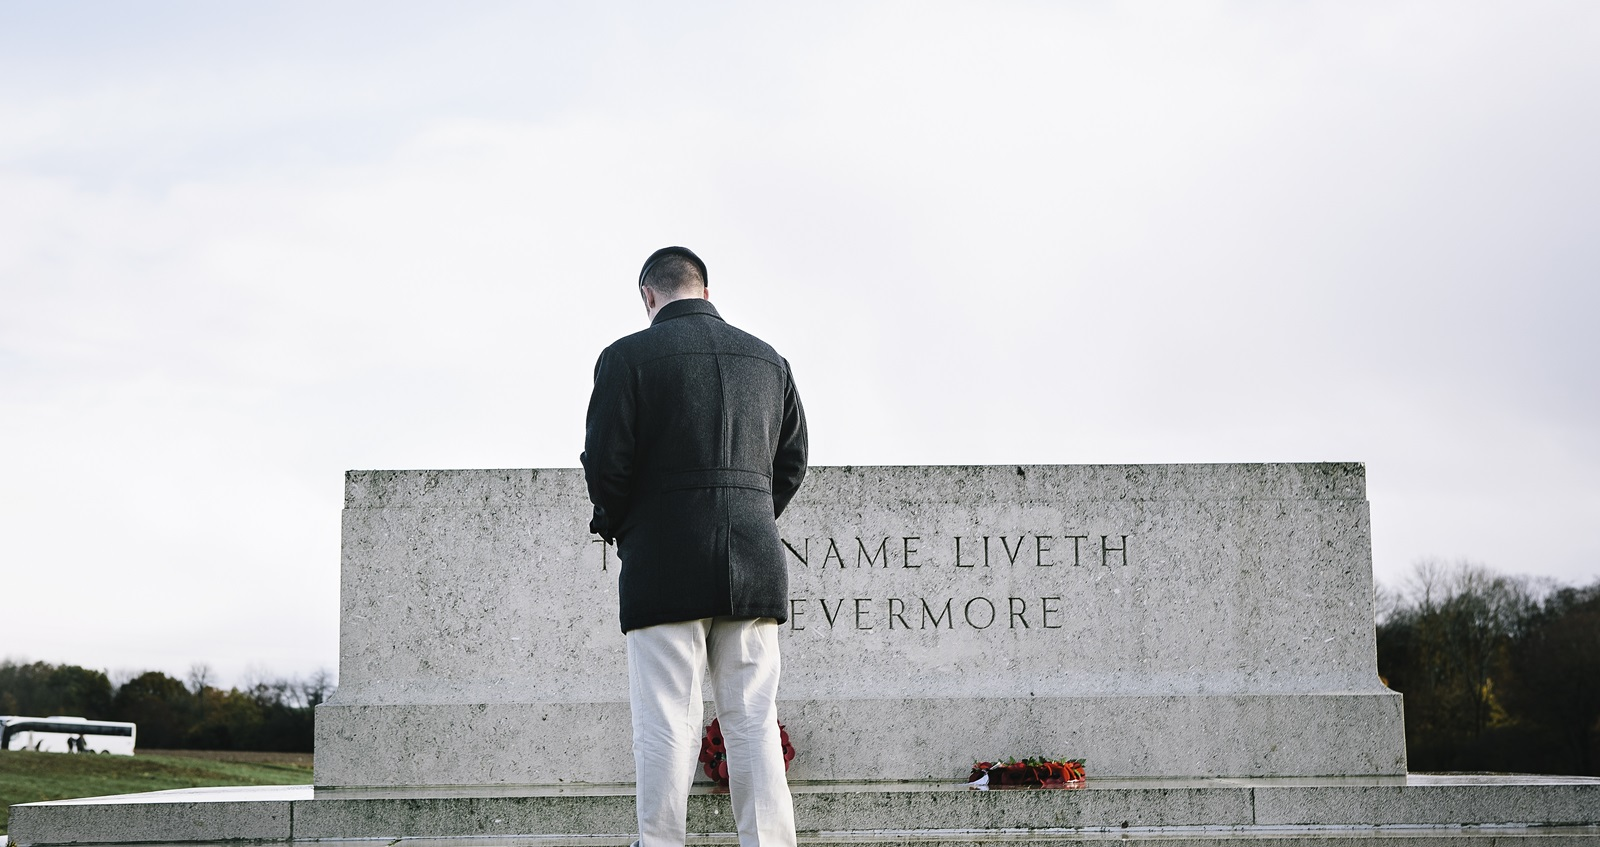 Veteran Liam Young bows his head before a memorial on a trip to the battlefields of the First World War